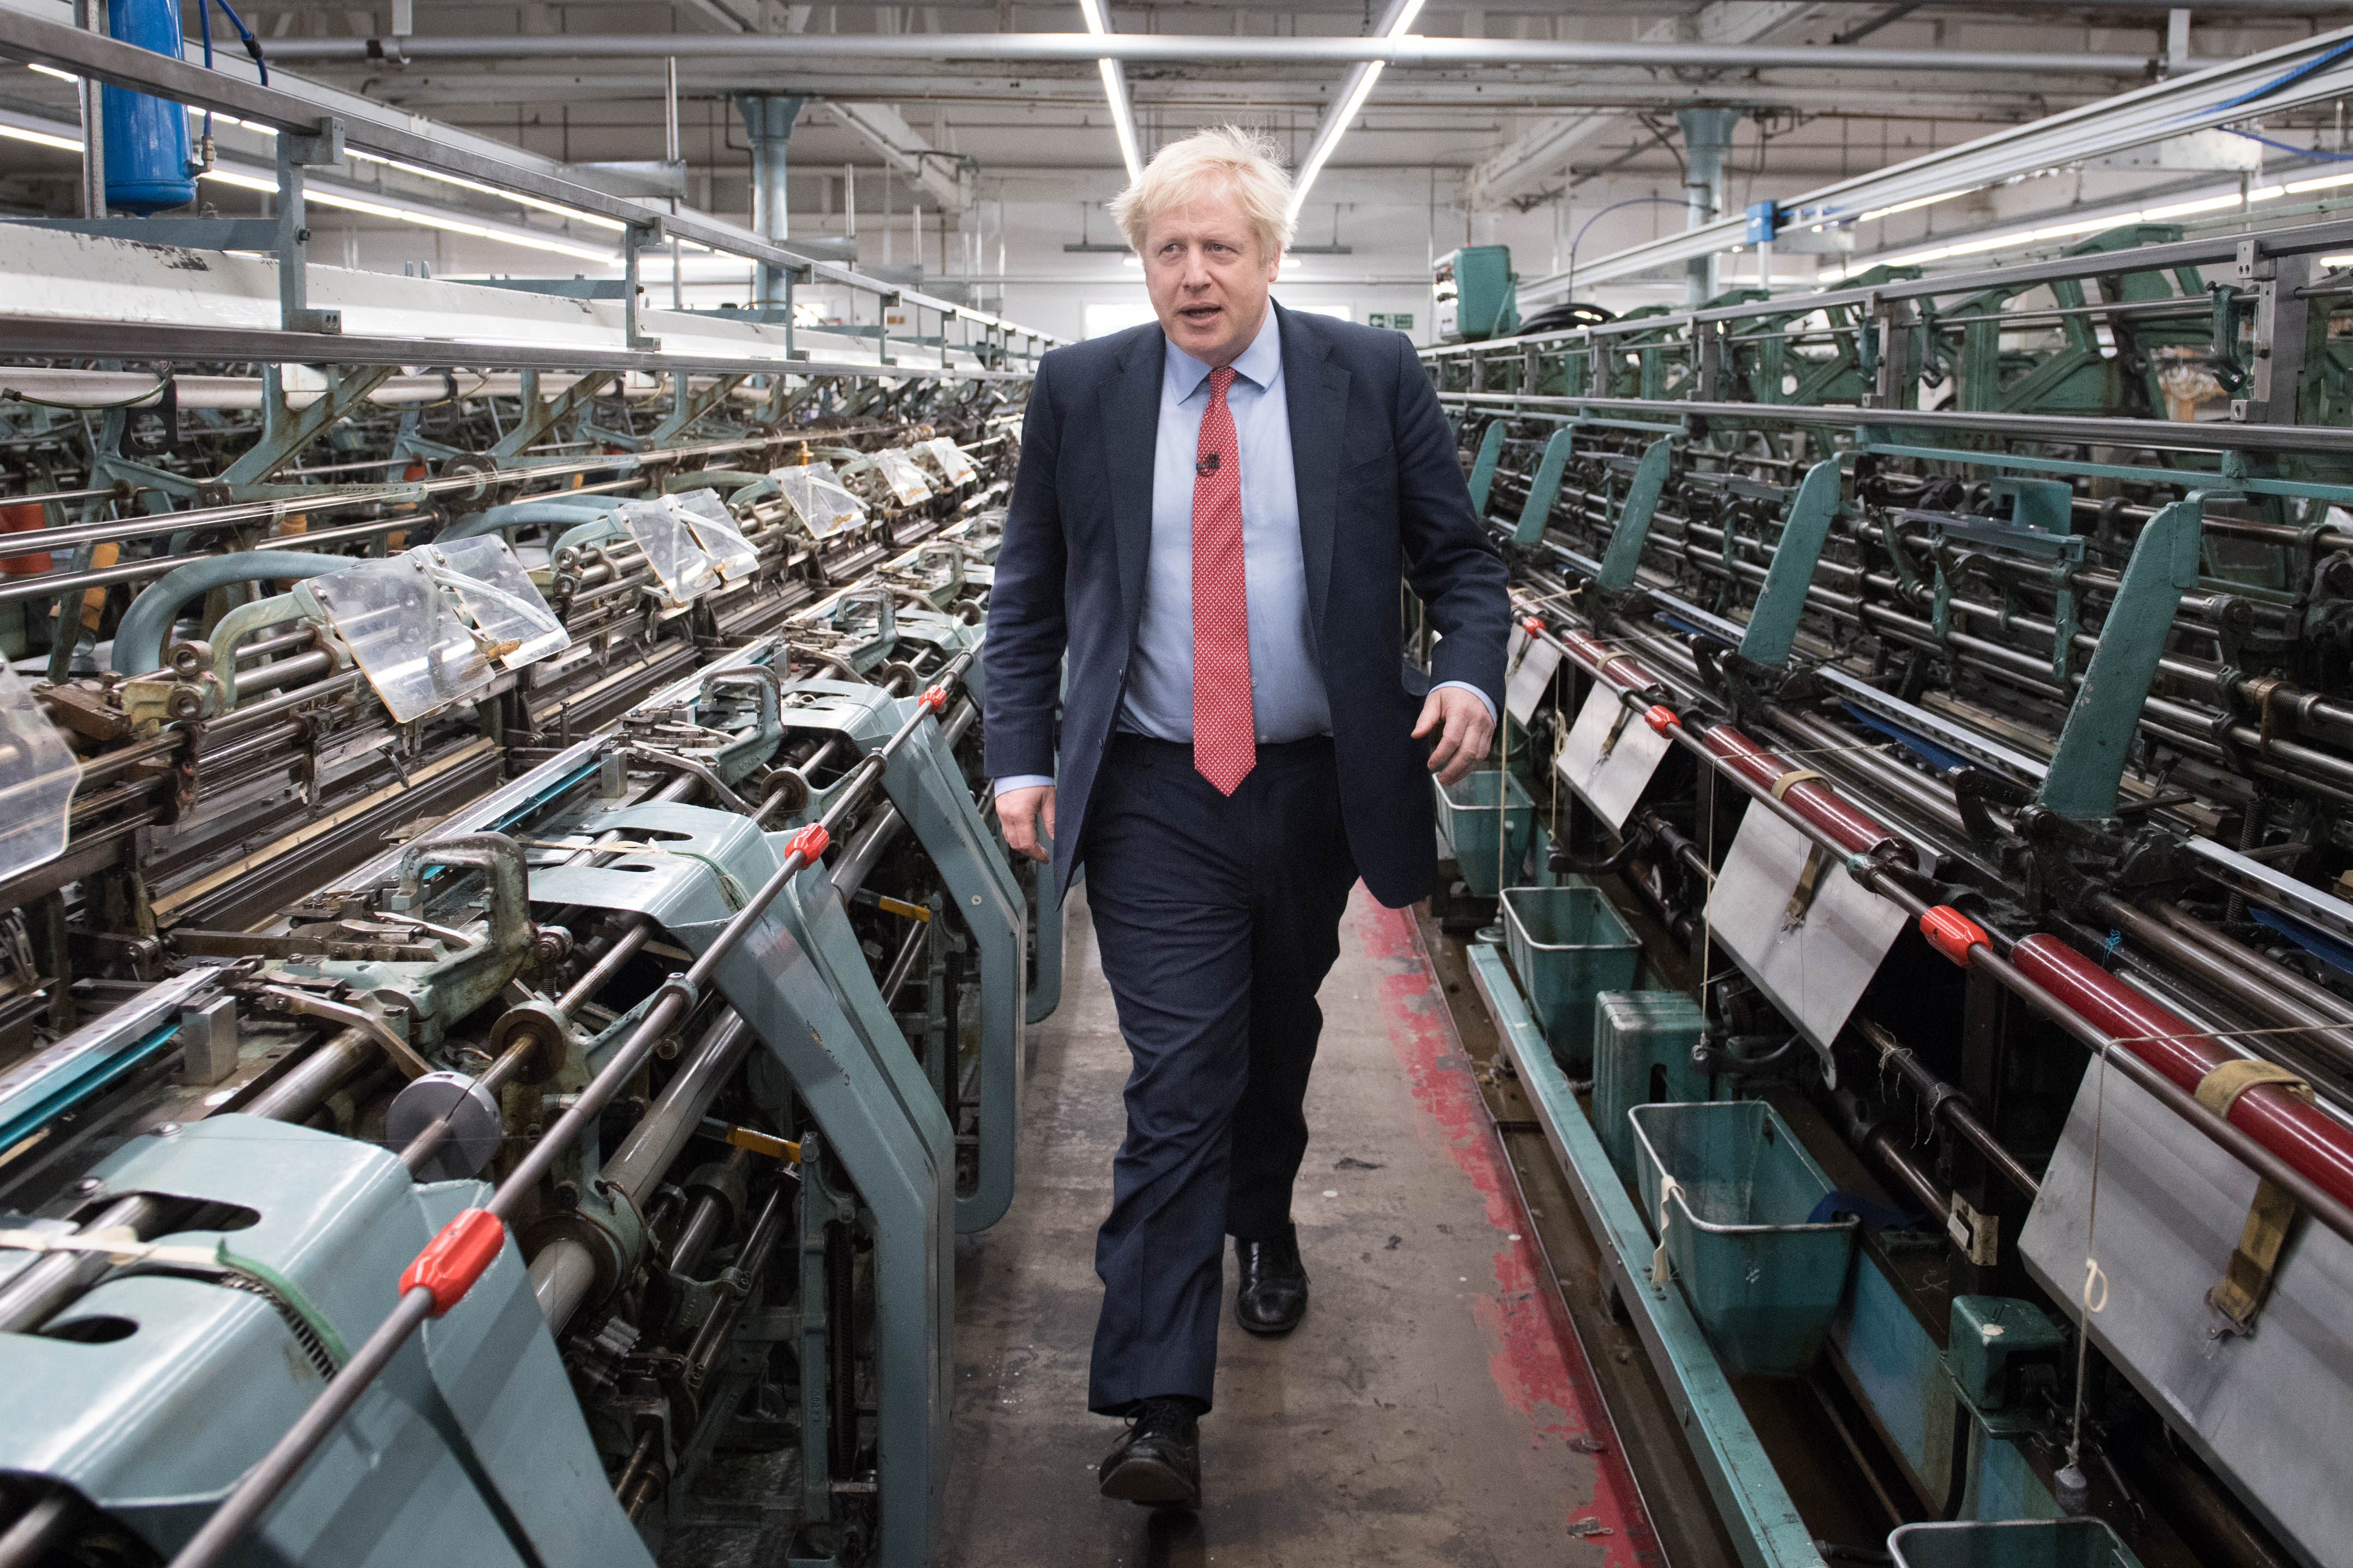 Prime Minister Boris Johnson during a visit to the John Smedley Mill, while election campaigning in Matlock, Derbyshire.